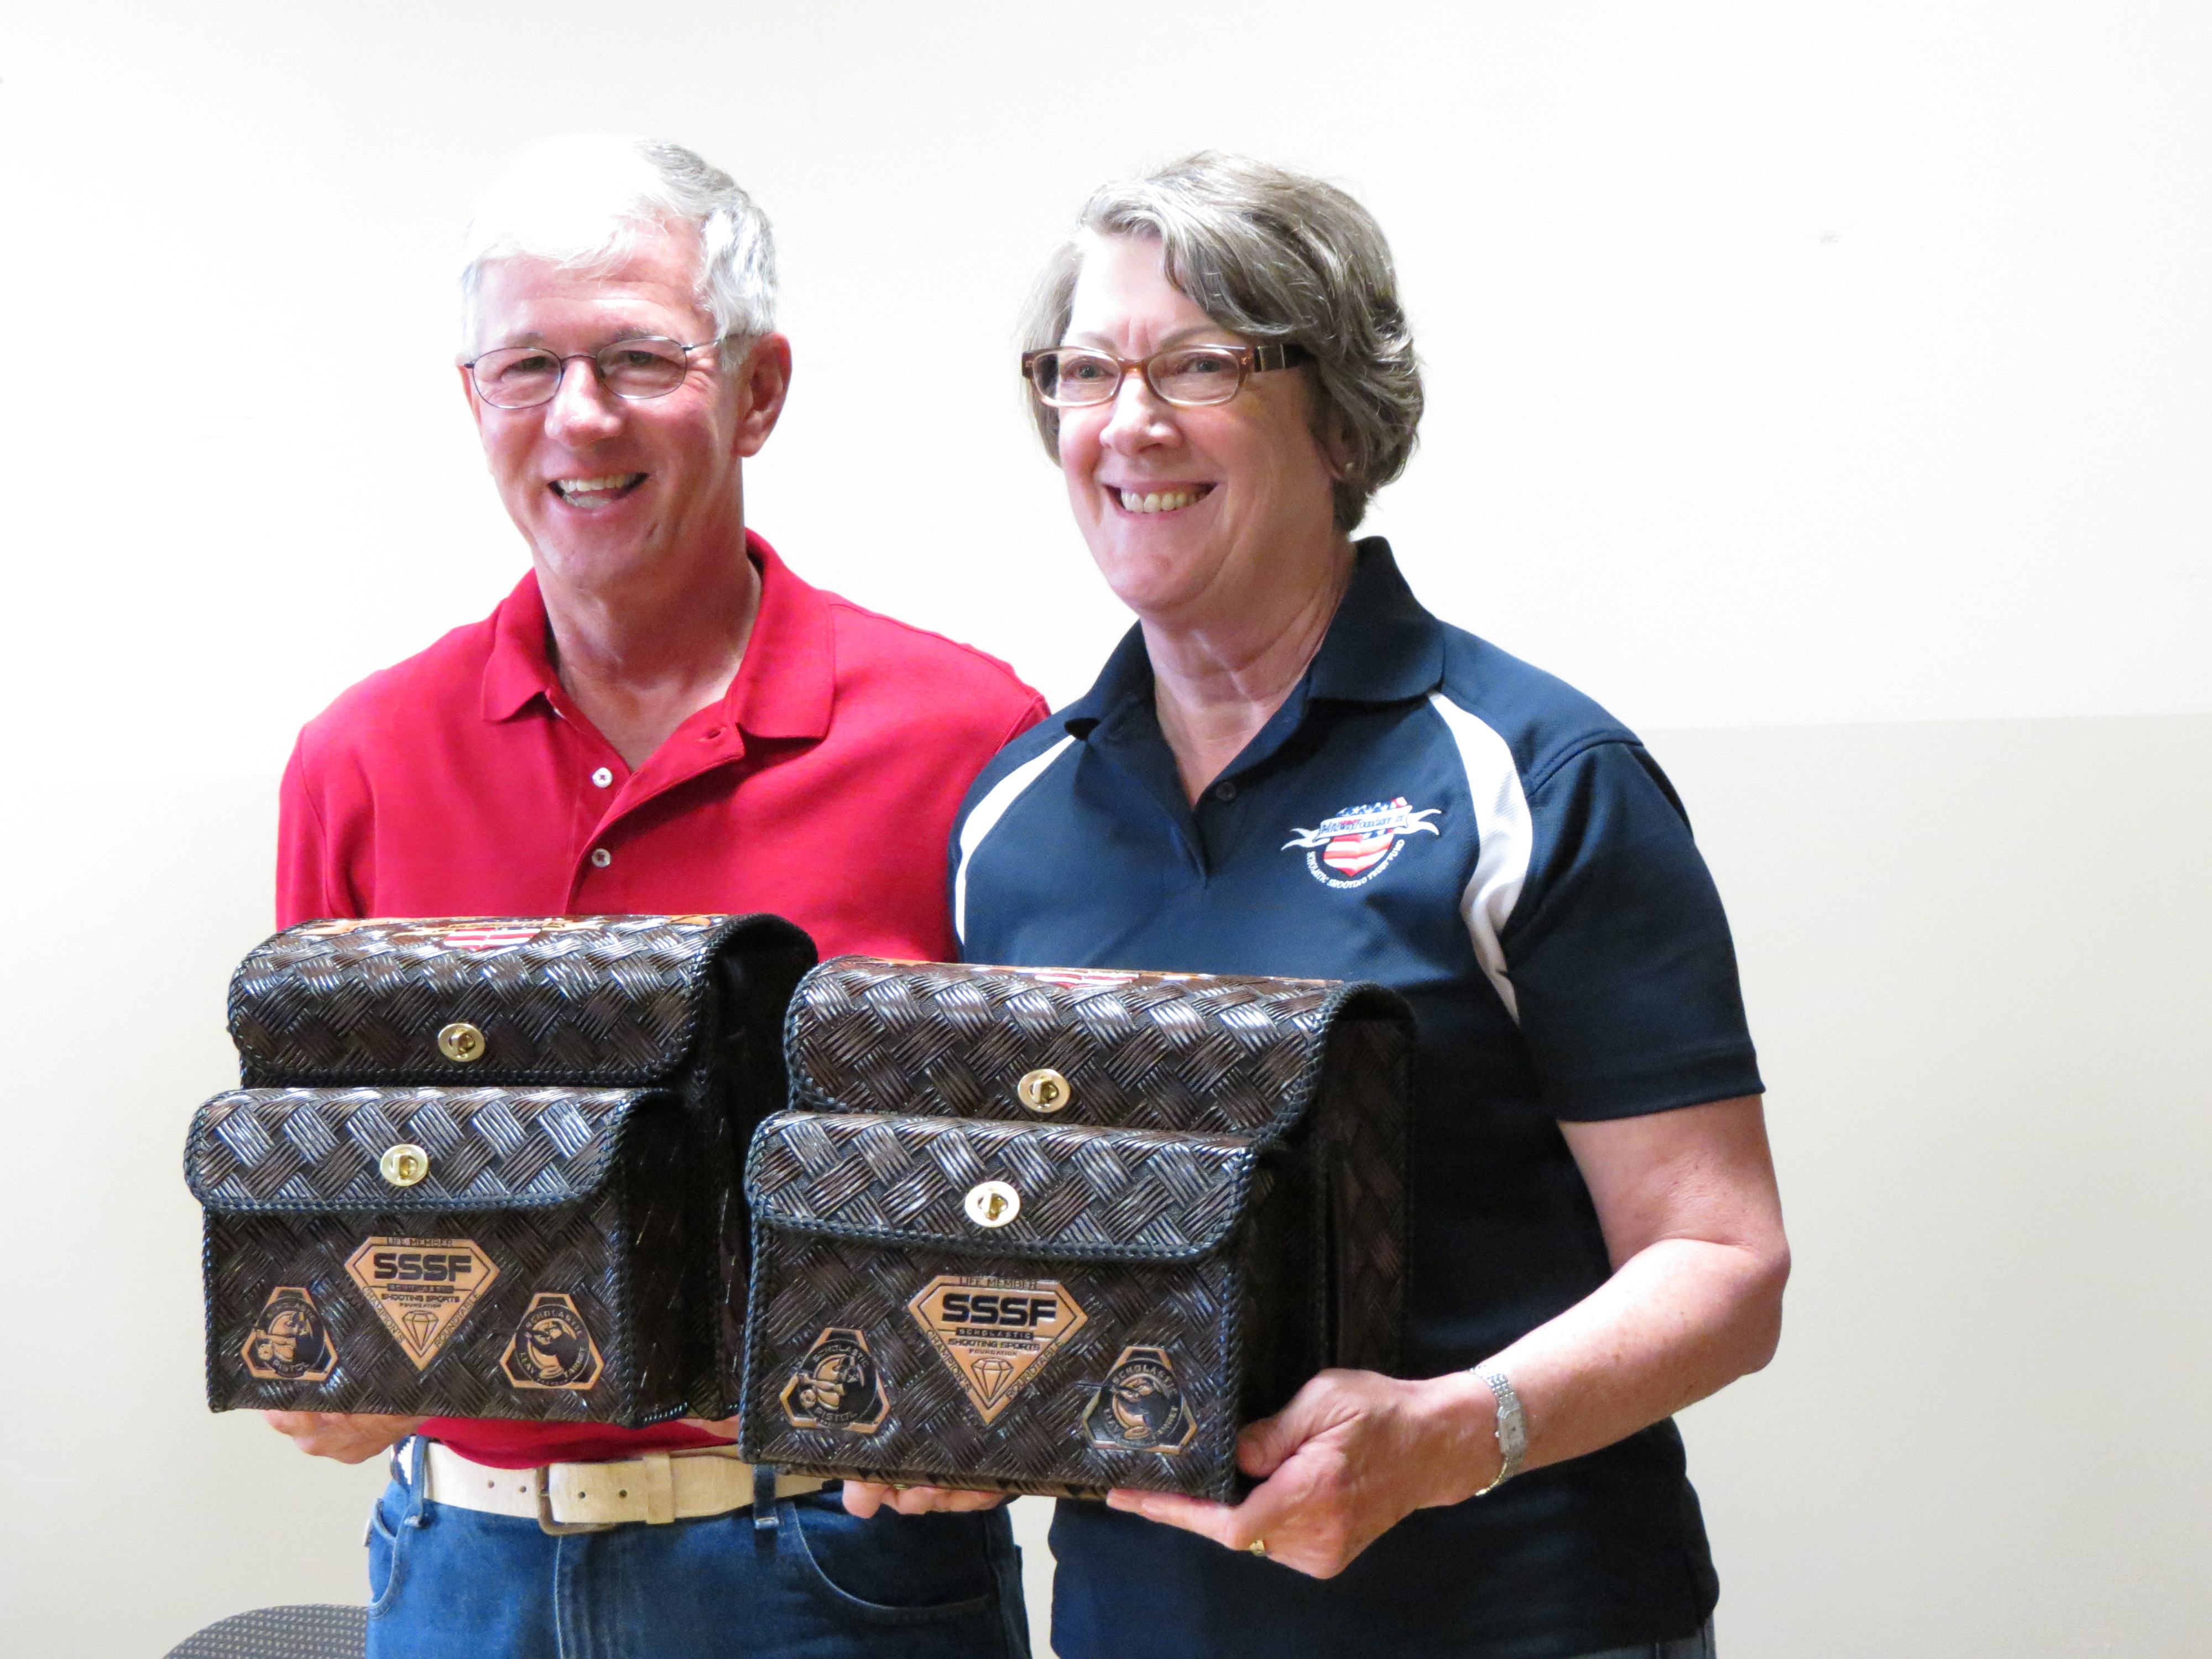 Larry and Brenda Potterfield after being presented with custom Shamrock Leathers shell bags